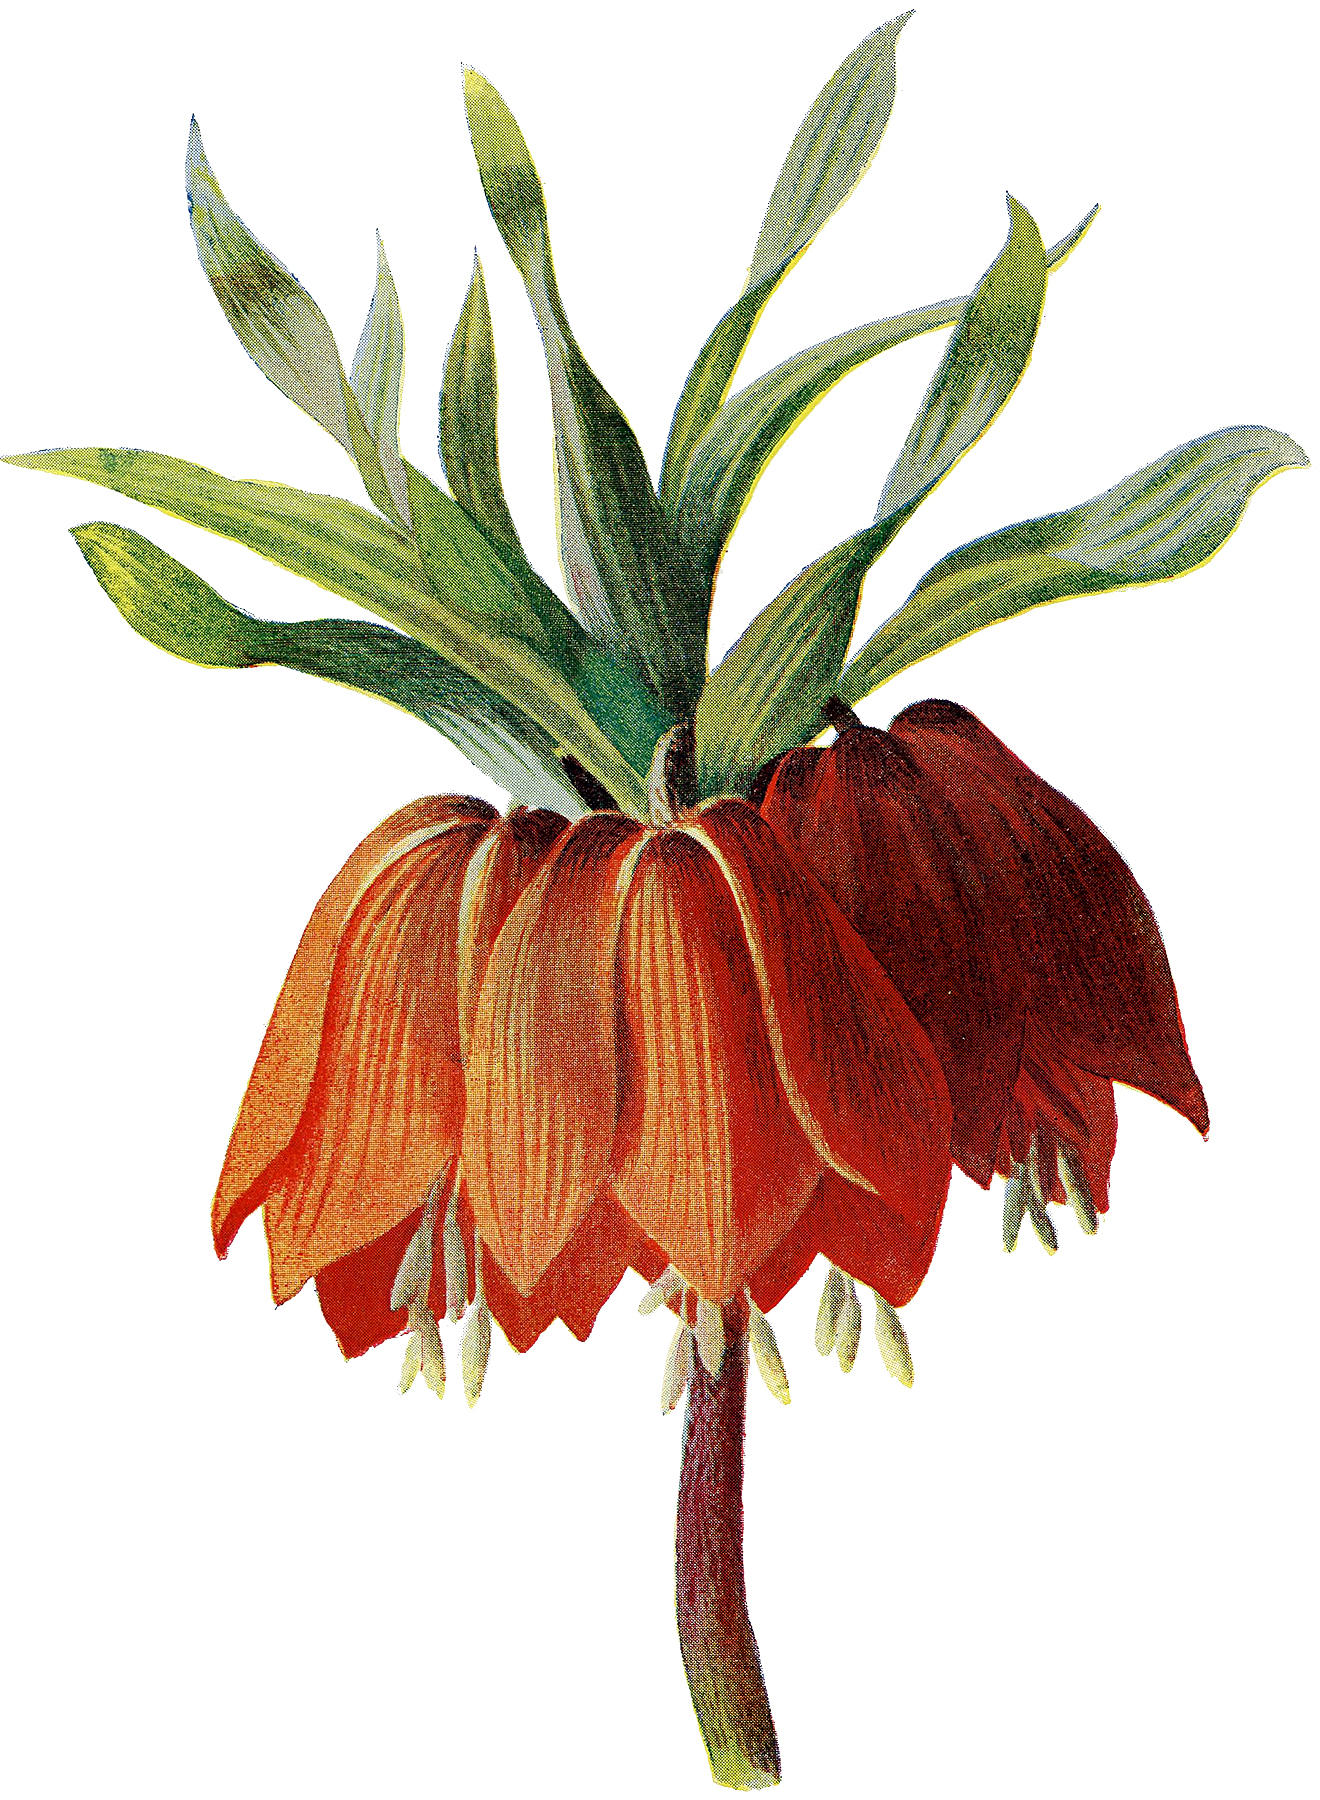 Vintage Stately Crown Imperial Flower Botanical Image The